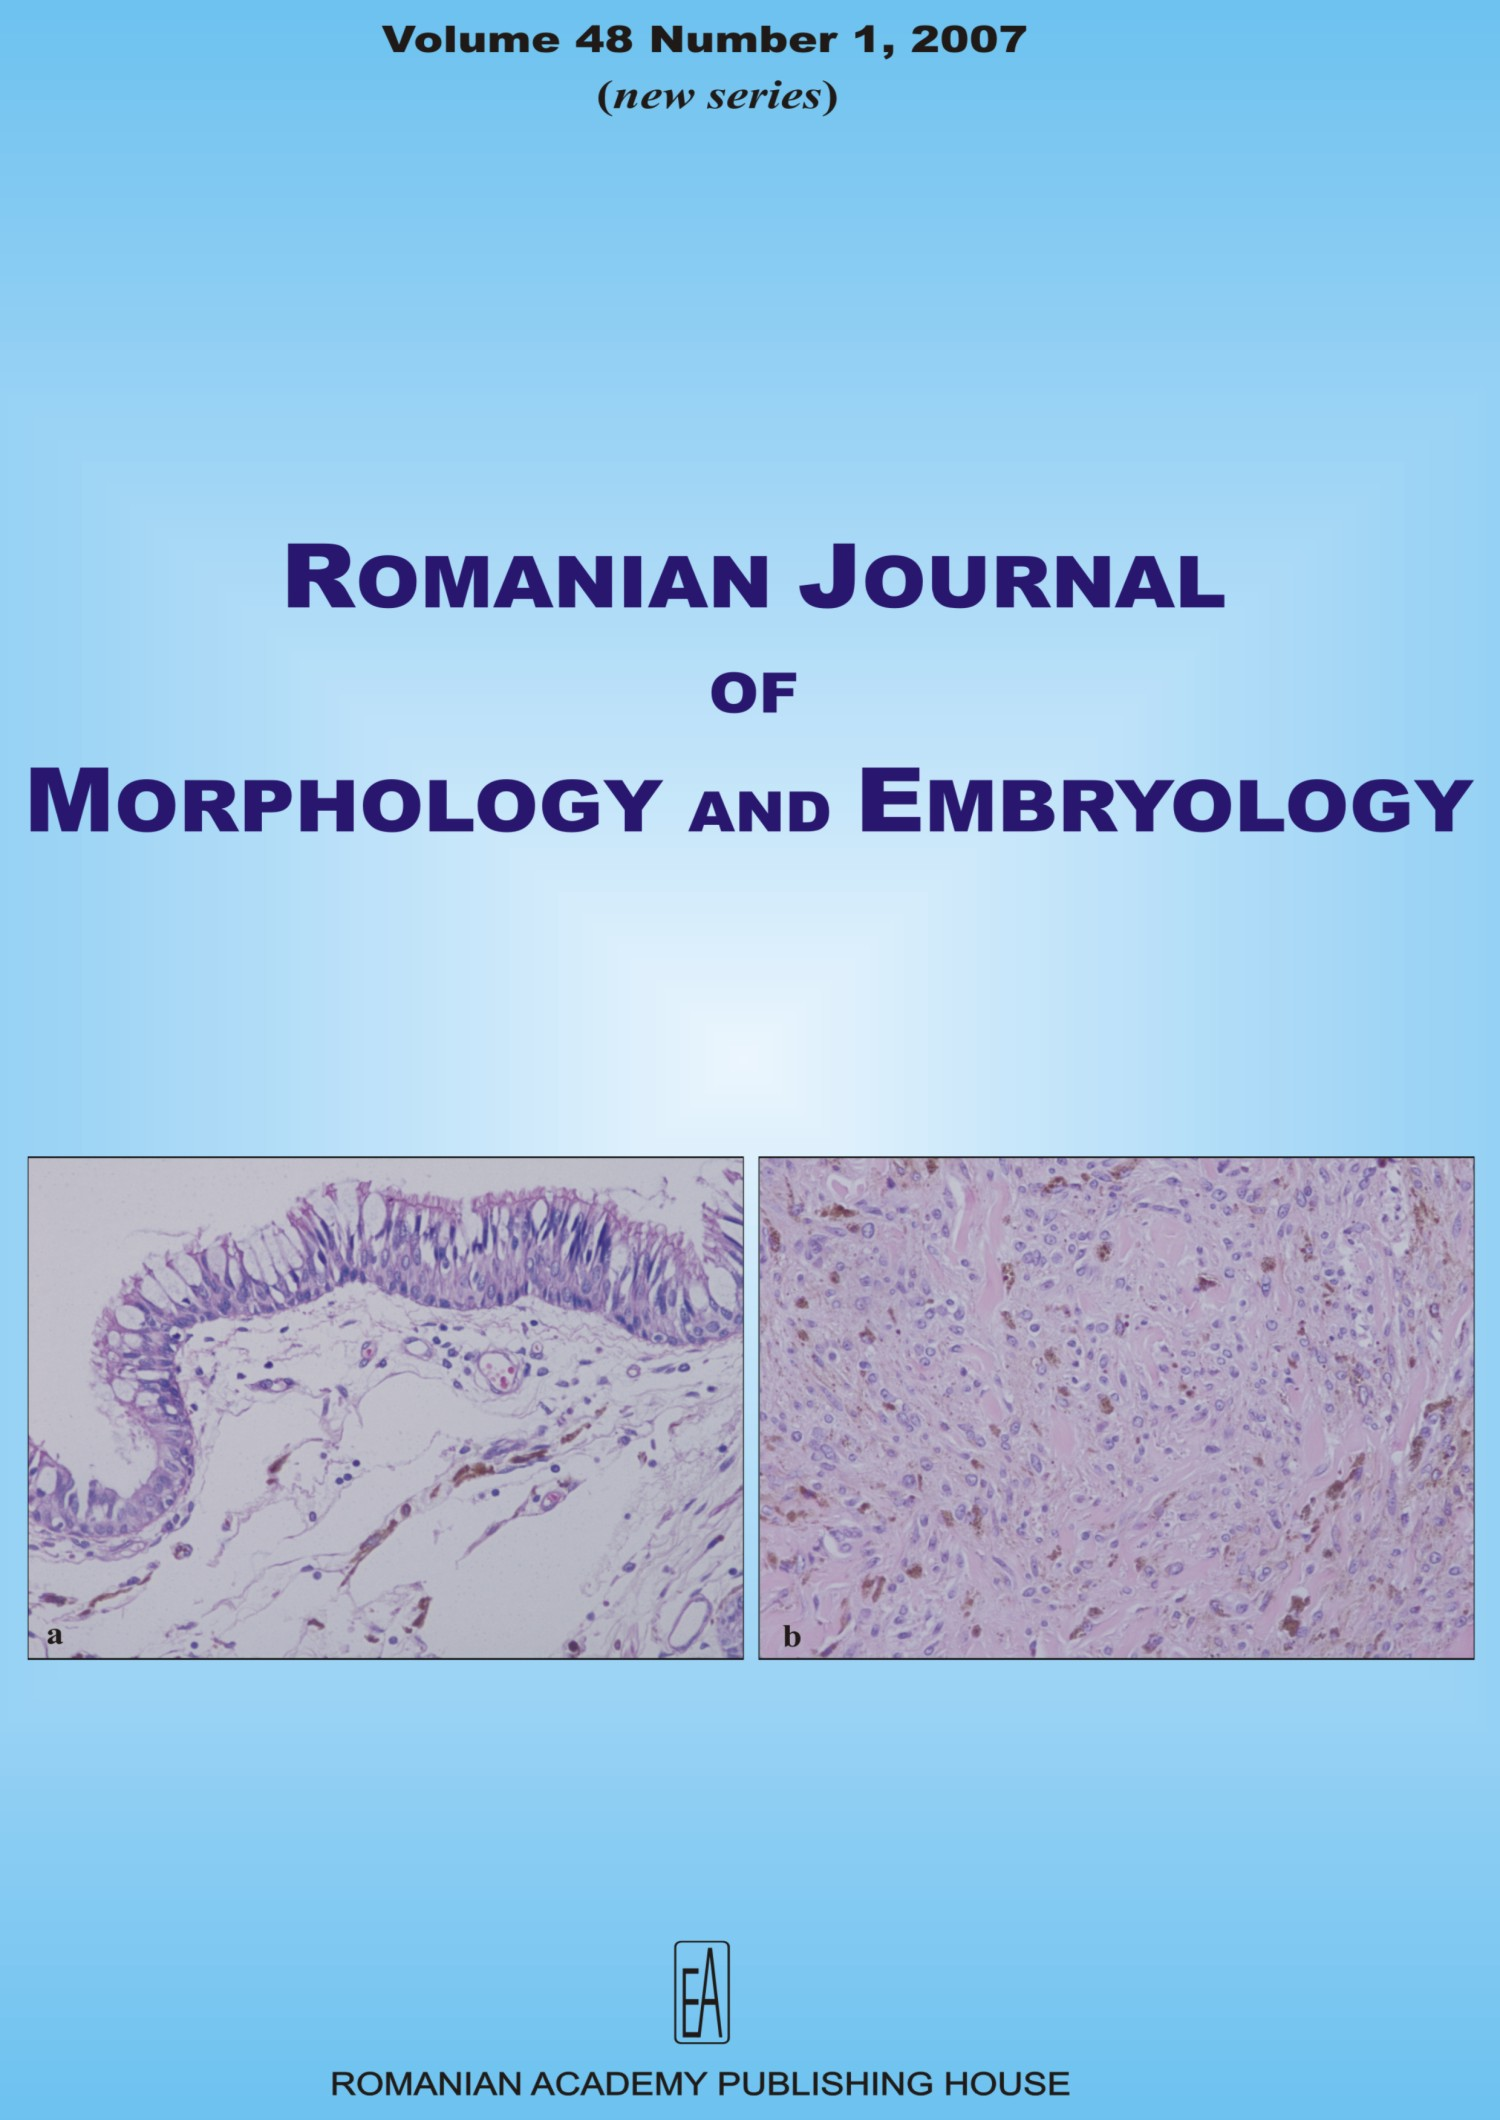 Romanian Journal of Morphology and Embryology, vol. 48 no. 1, 2007